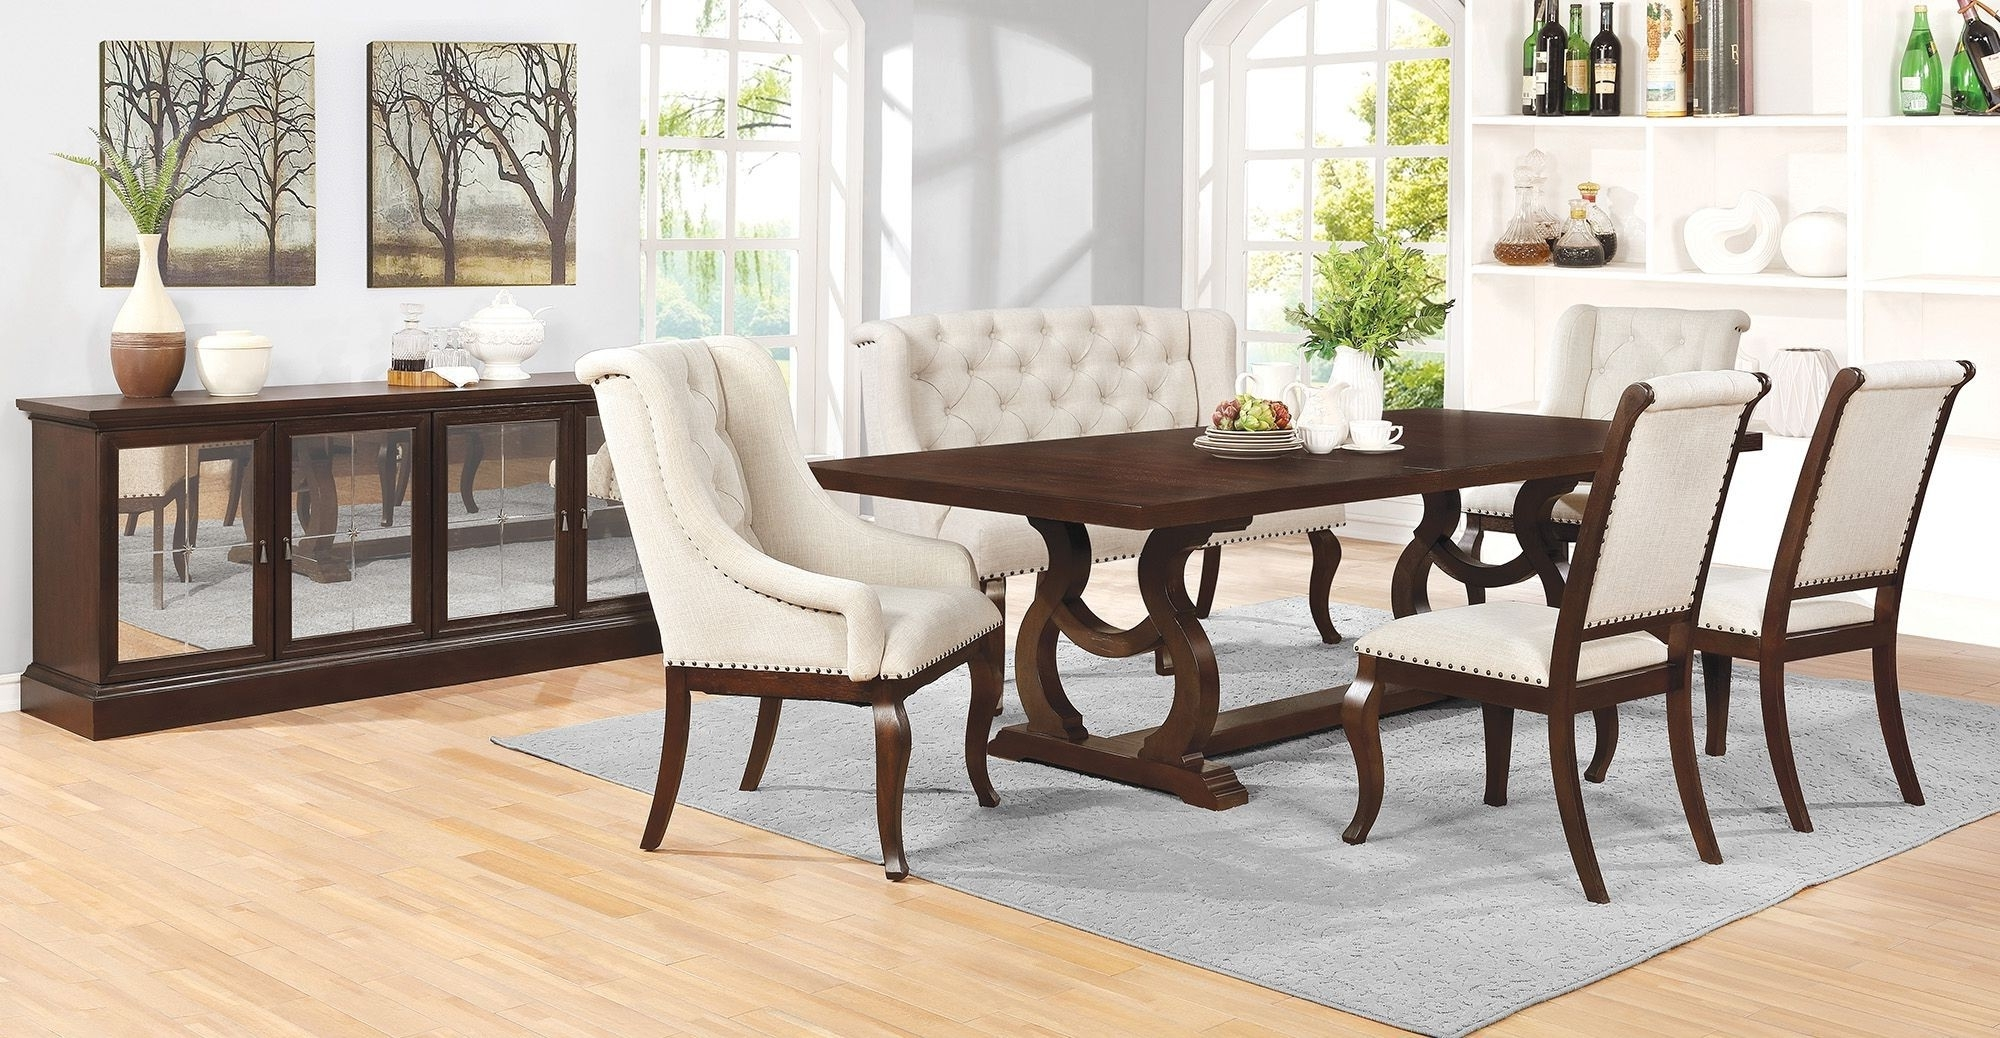 Fashionable Java Dining Tables Intended For Glen Cove Antique Java Dining Tablescott Living For $ (View 5 of 25)